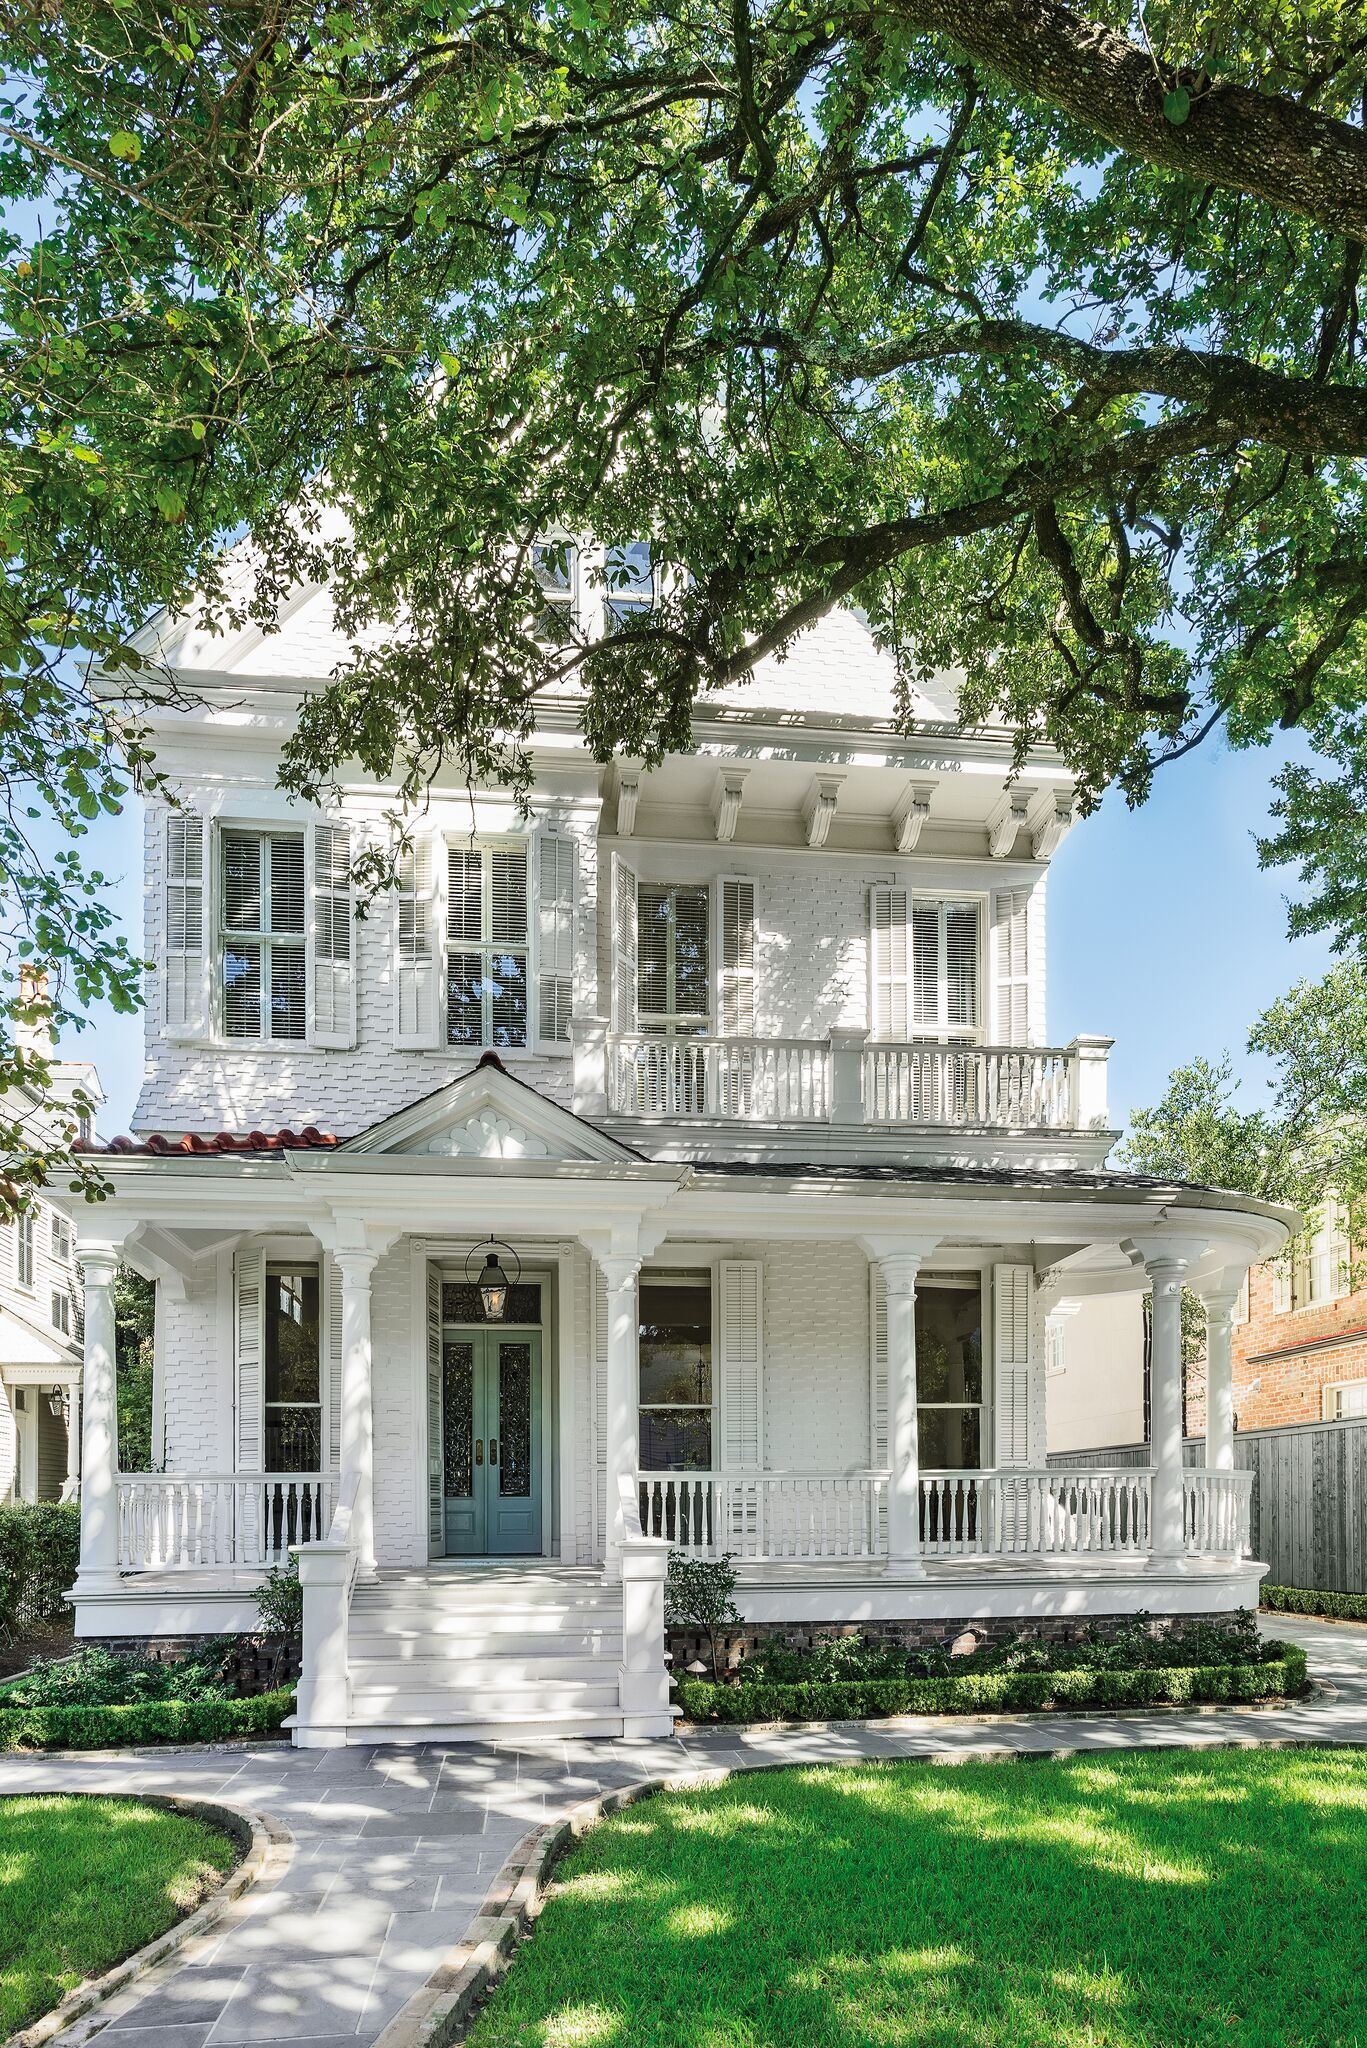 Stately white painted Victorian home has breathtaking architecture and curb appeal in the lower Garden District of New Orleans. #houseexterior #victorianhouses #beautifulwhitehouse #historichome #curbappeal #frontporch